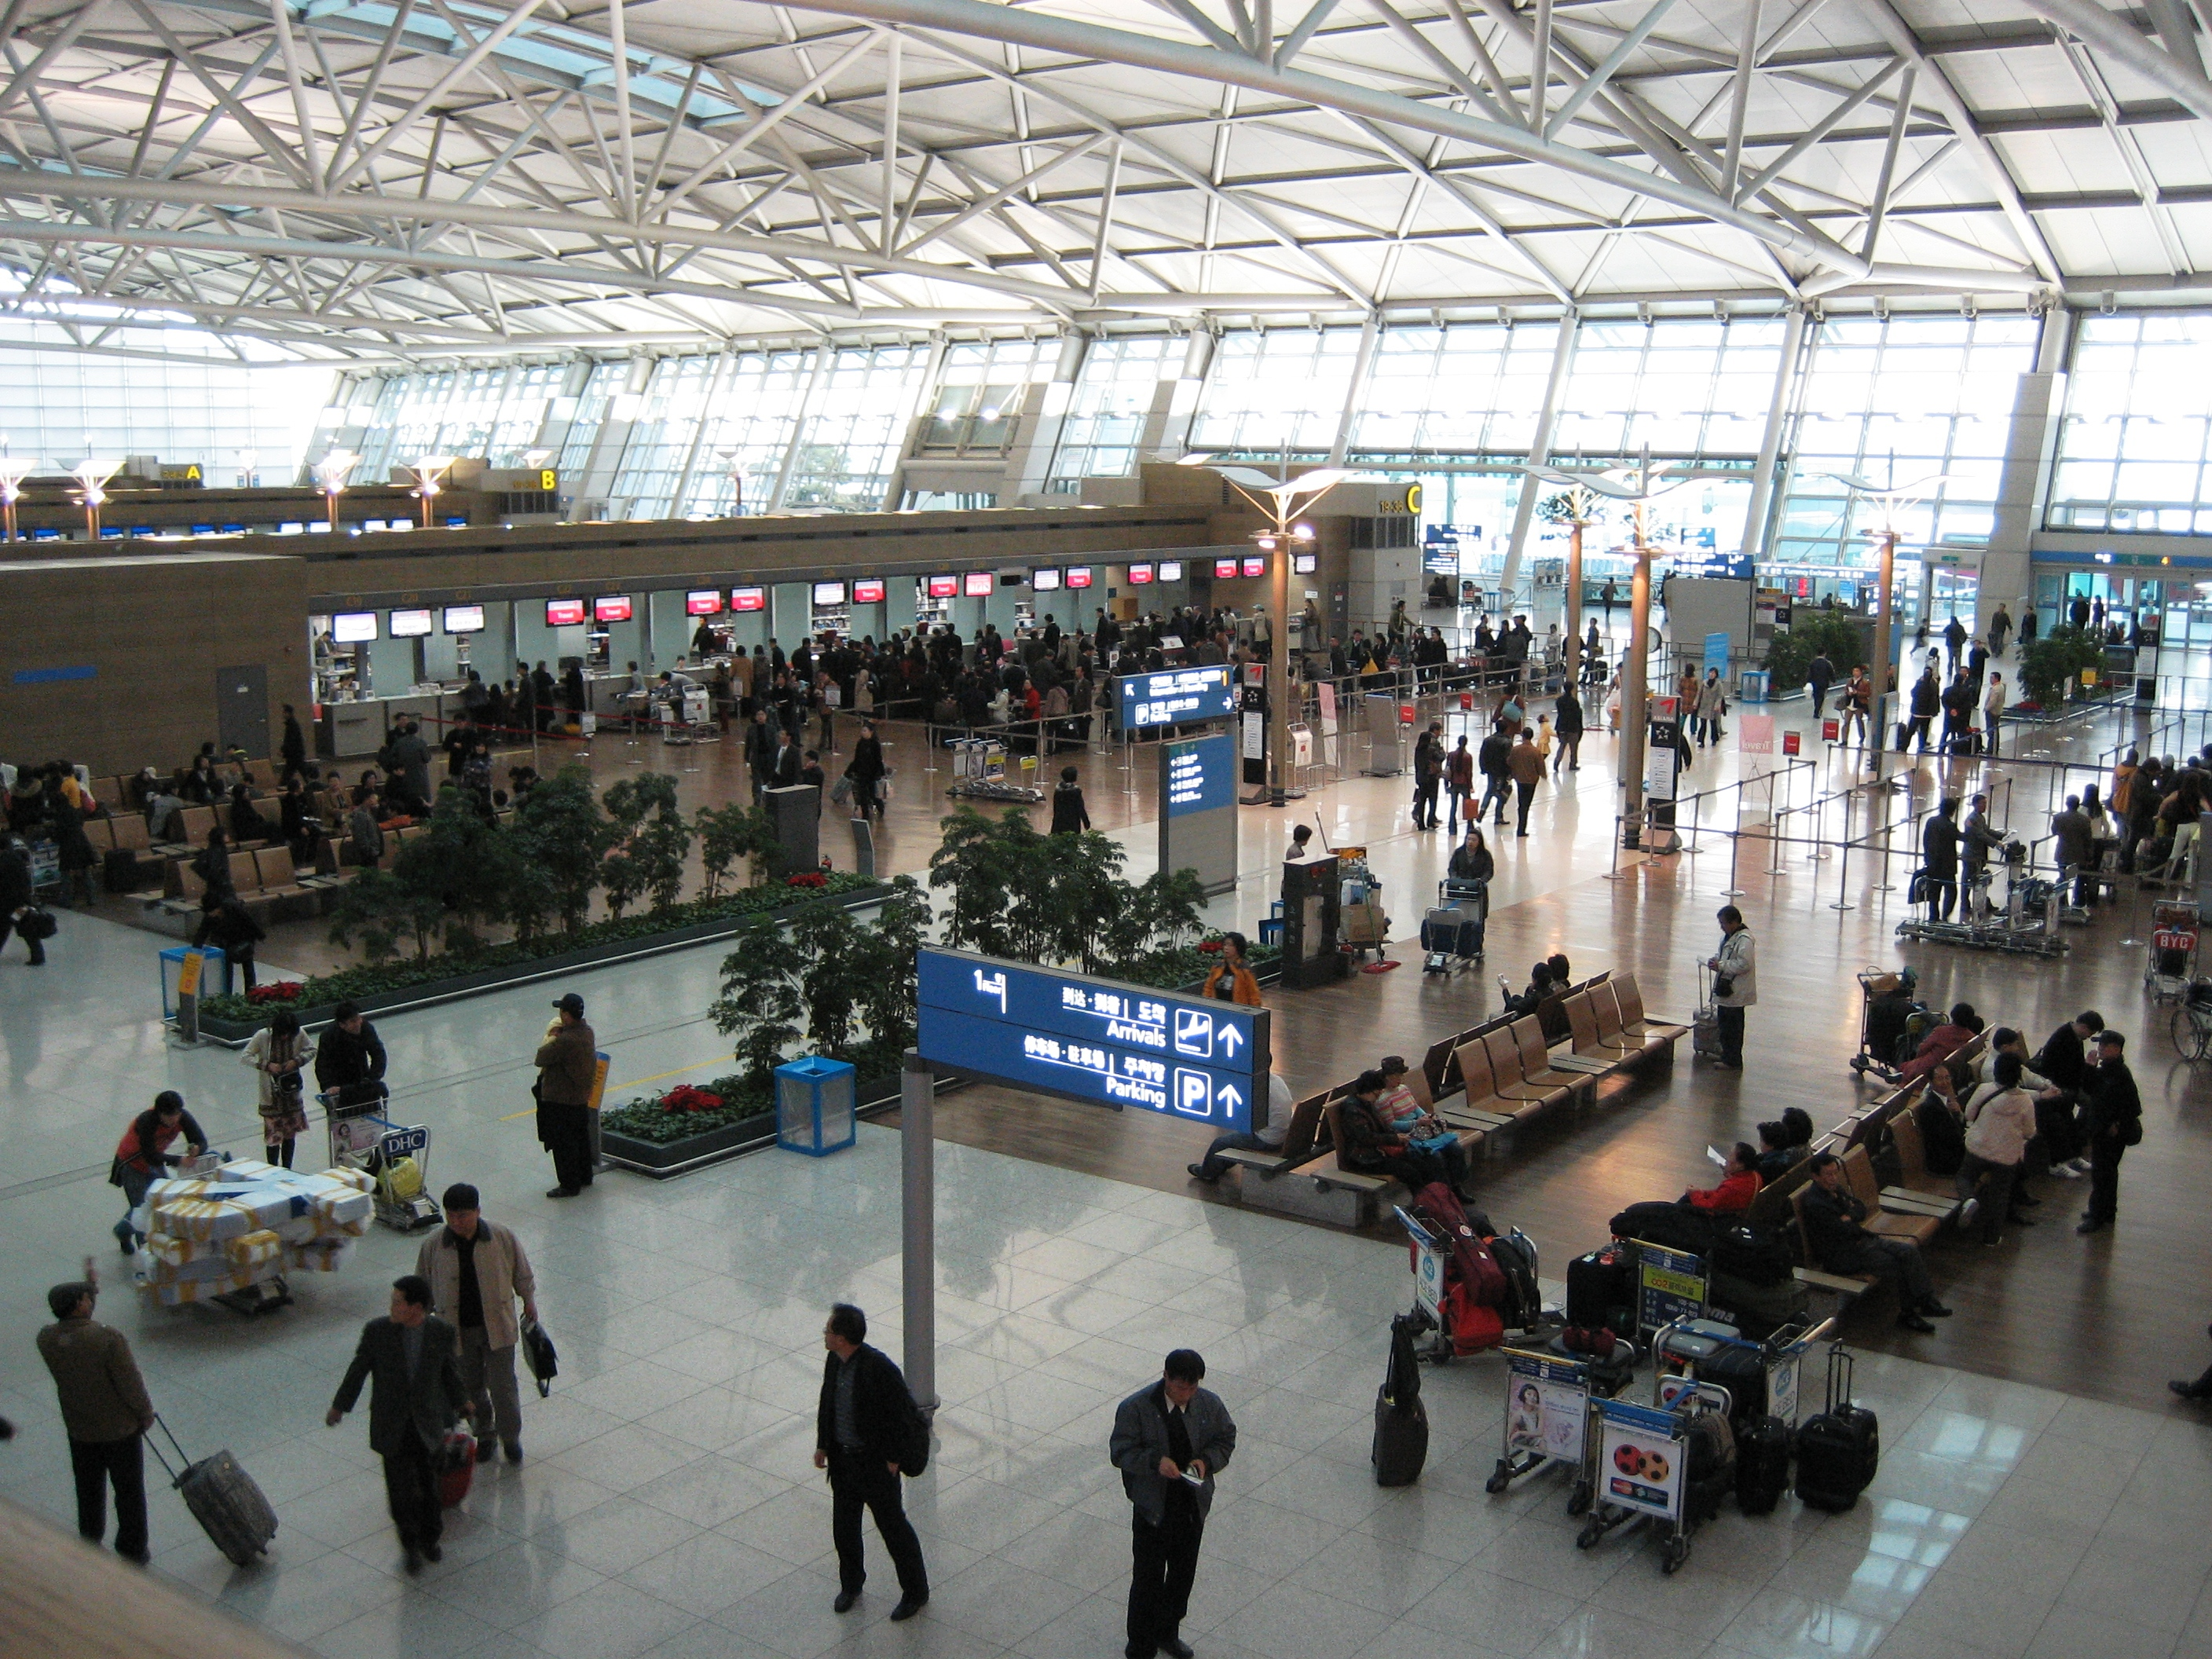 south korea airport 2 - photo #25